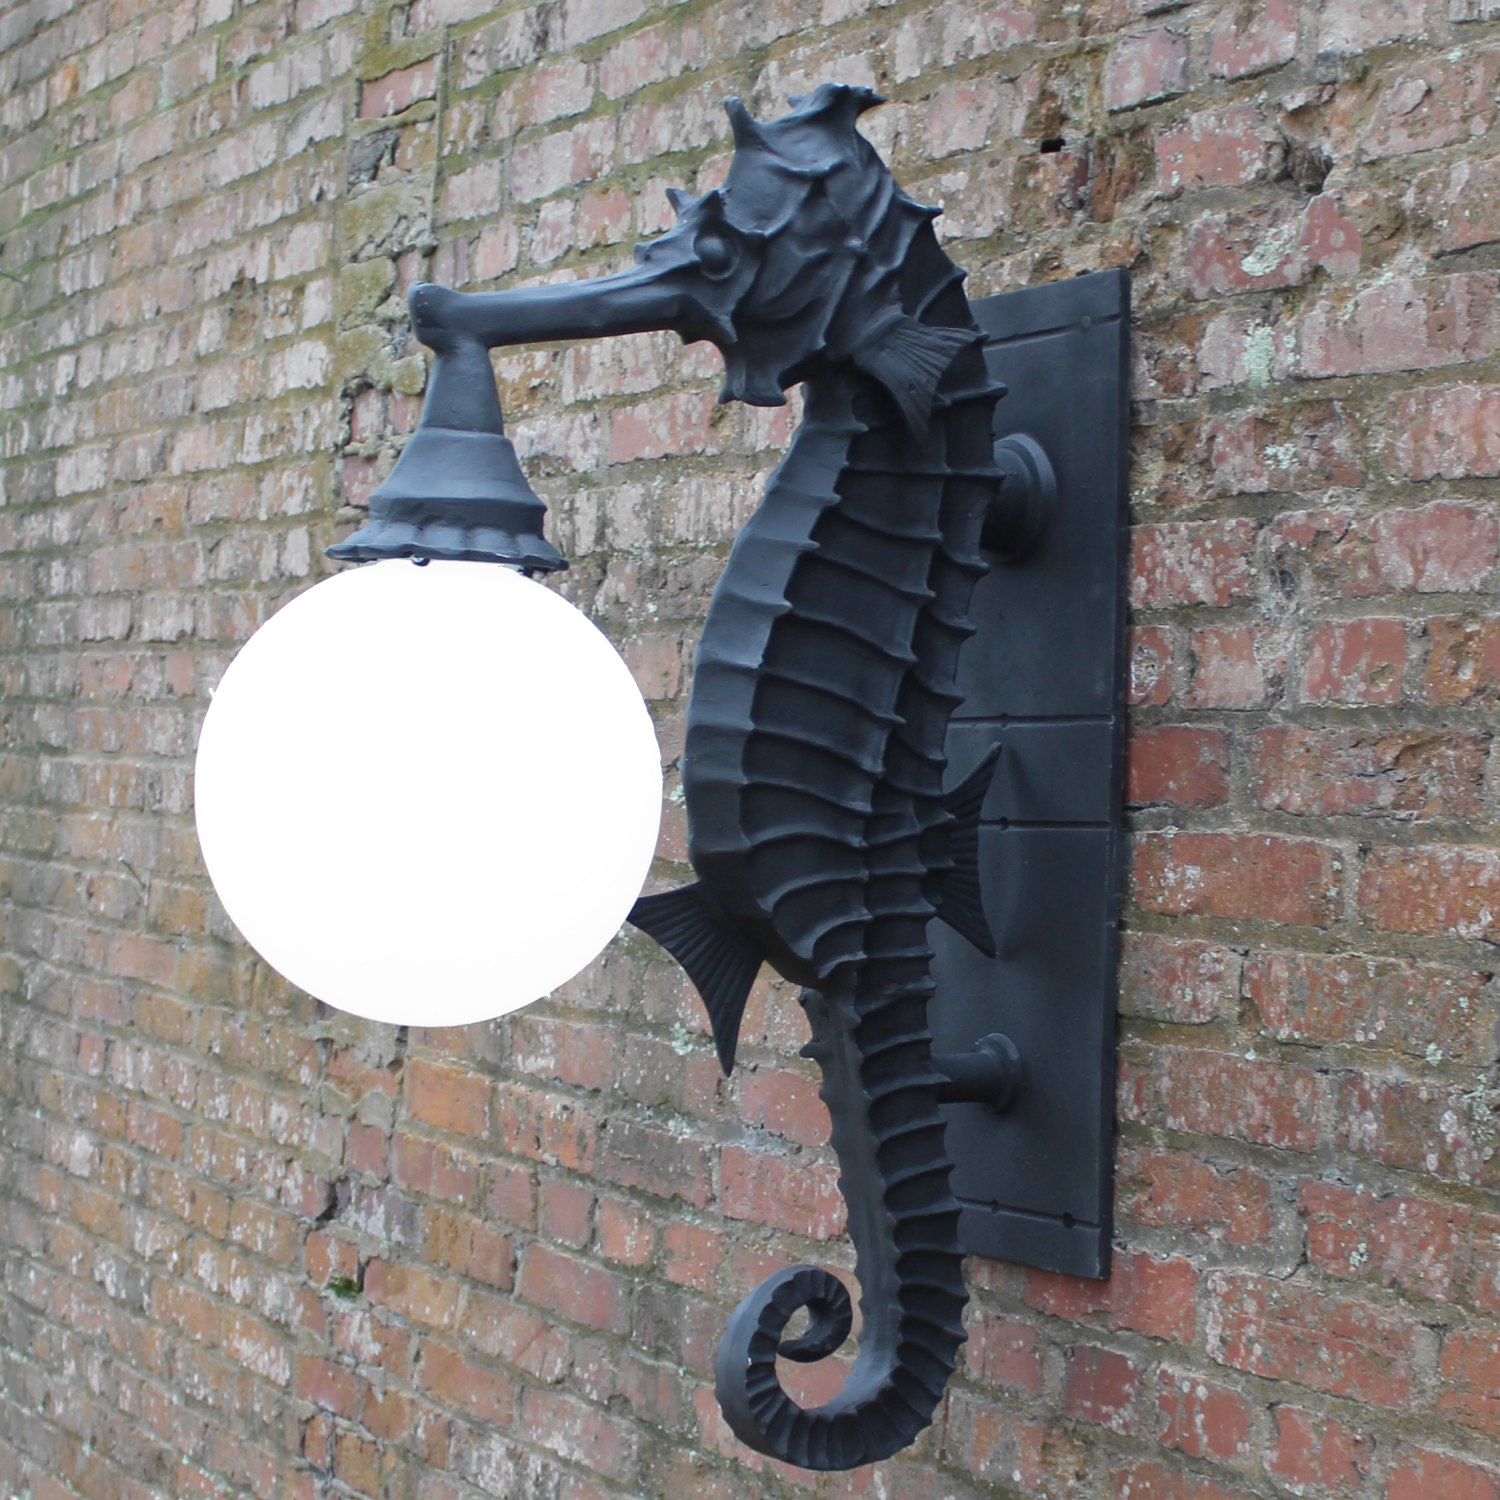 Sea Horse Wall Sconce Light Nautical Outdoor Fixture Commercial Or Residential The Kings Bay